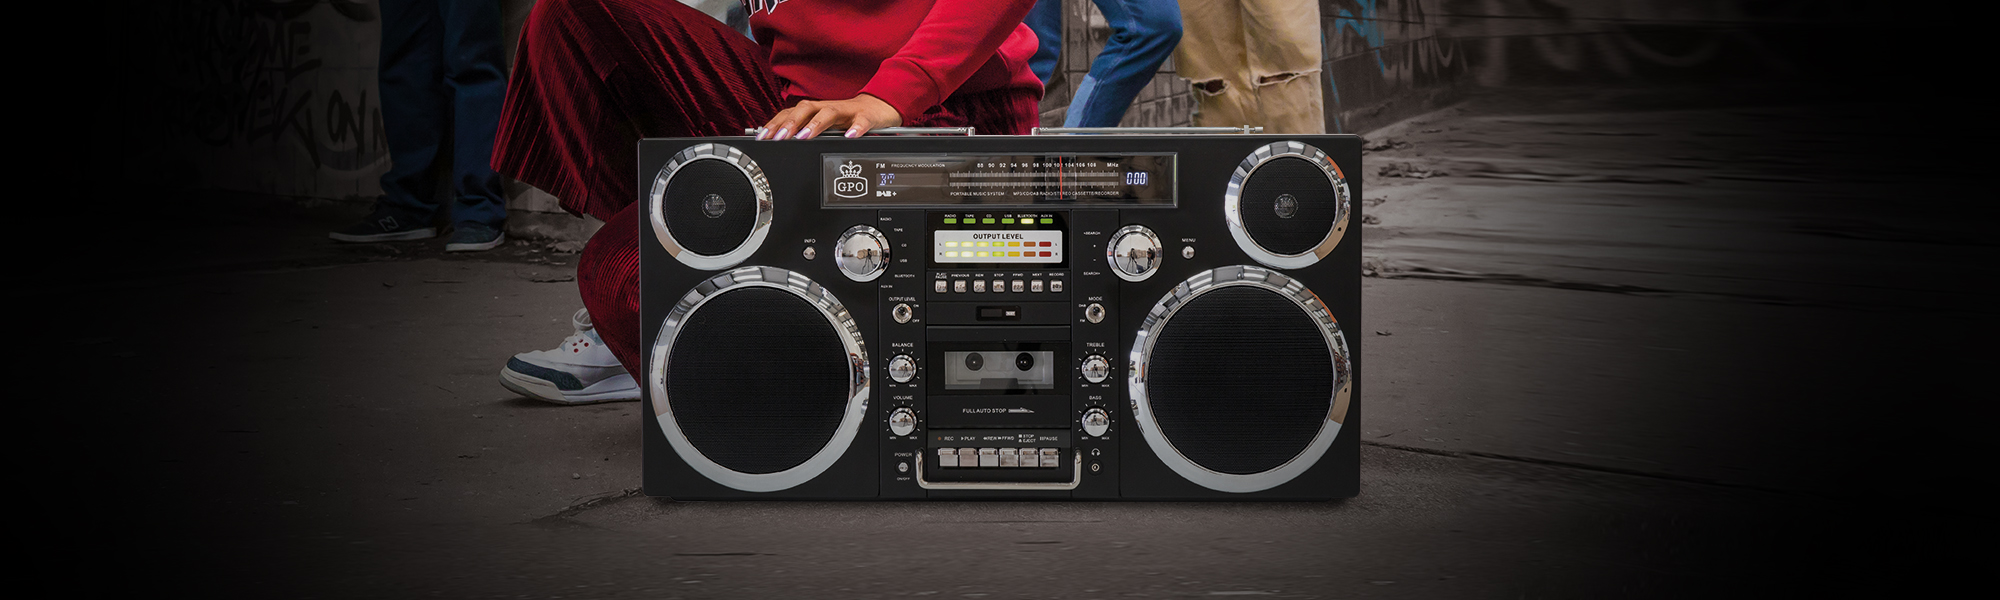 Best Boombox Bluetooth | ghetto blaster bluetooth | Retro Bluetooth Boombox